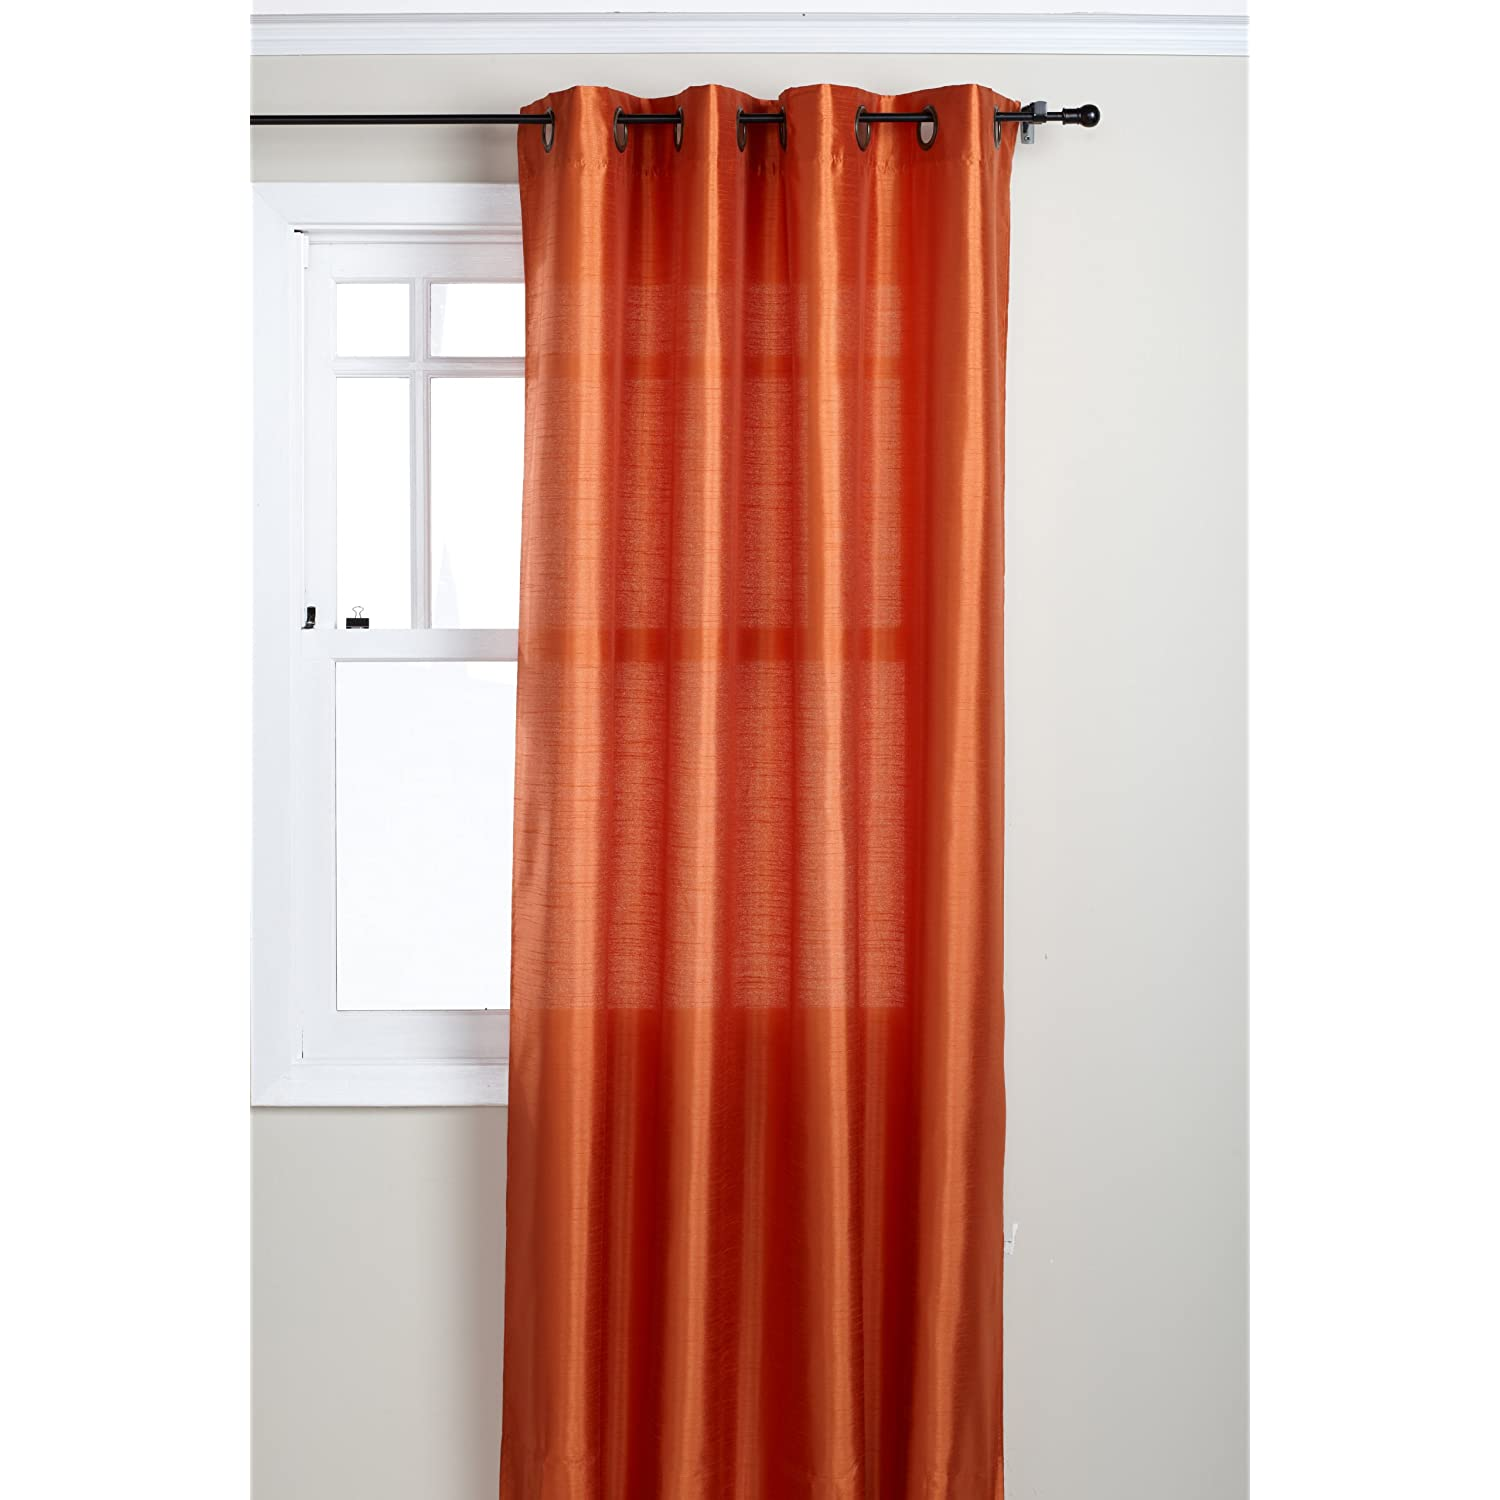 Faux silk interlined drapery panel in Curtains  Drapes - Compare